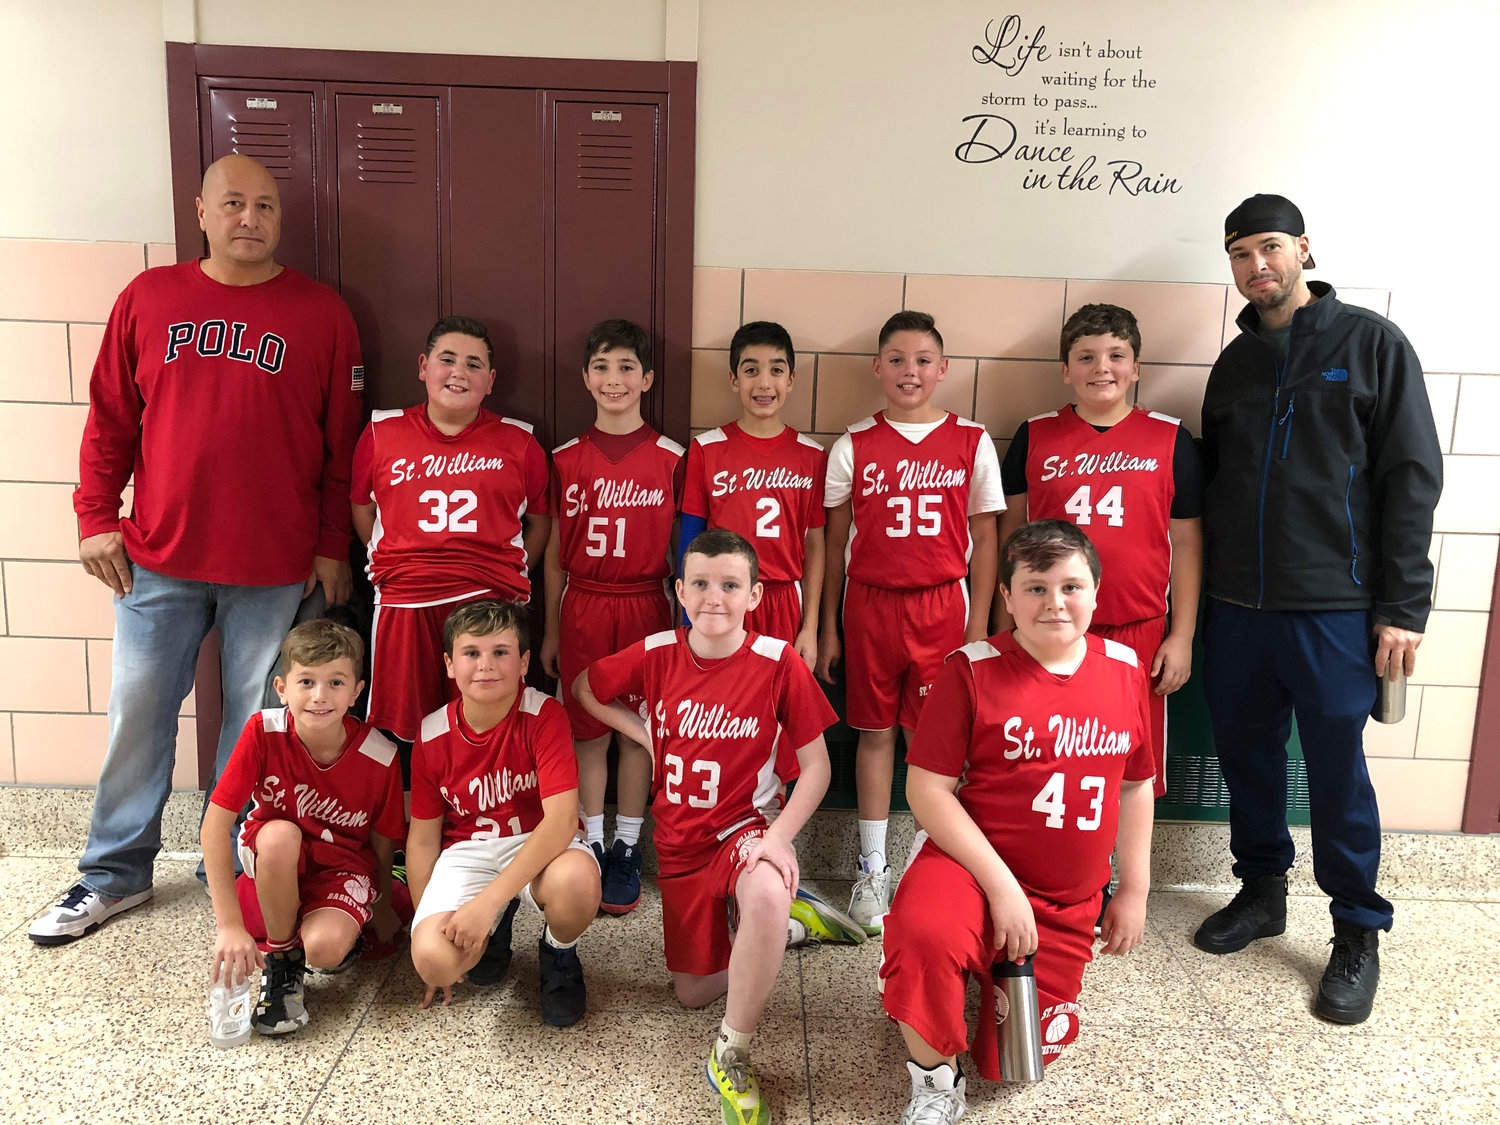 Coach JOE Marino, left, with the St. William fifth-grade boys' basketball team after their 22-20 overtime thriller loss to St. Bernard.